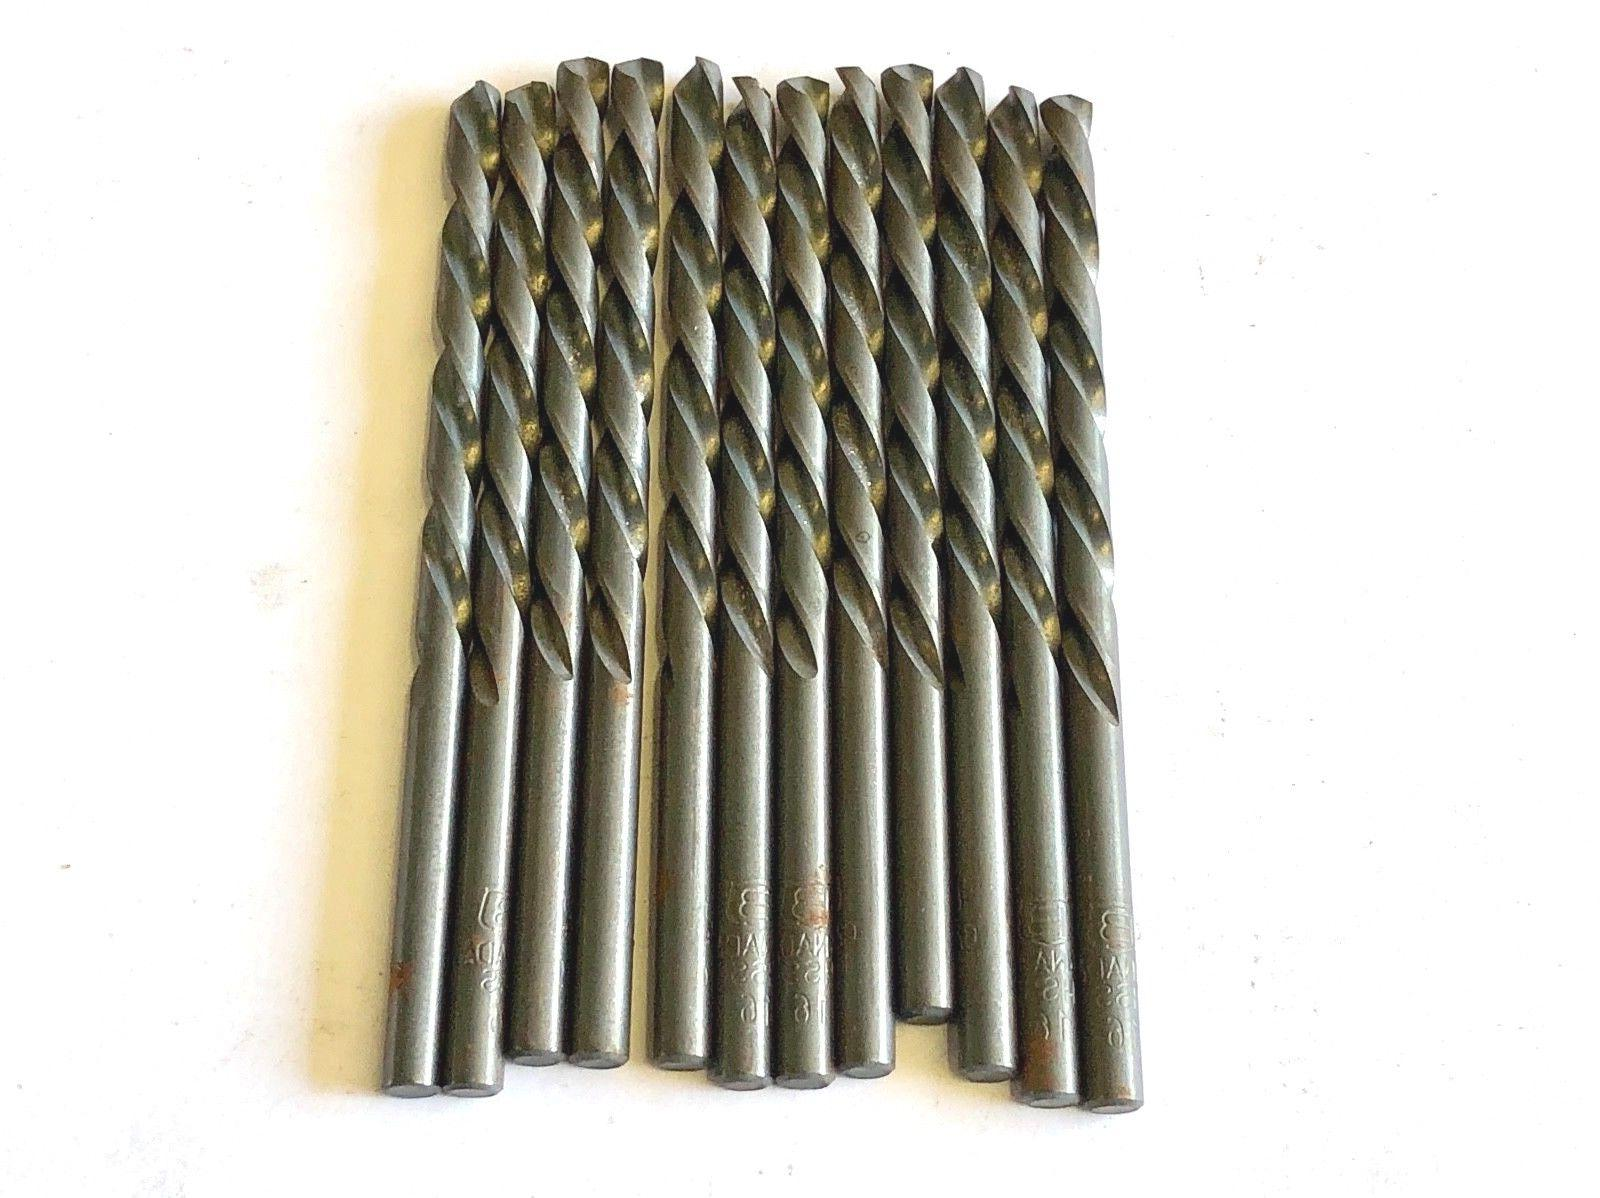 No.16 Drill Bit Heavy Duty Jobber Length Drills 135 Split Po